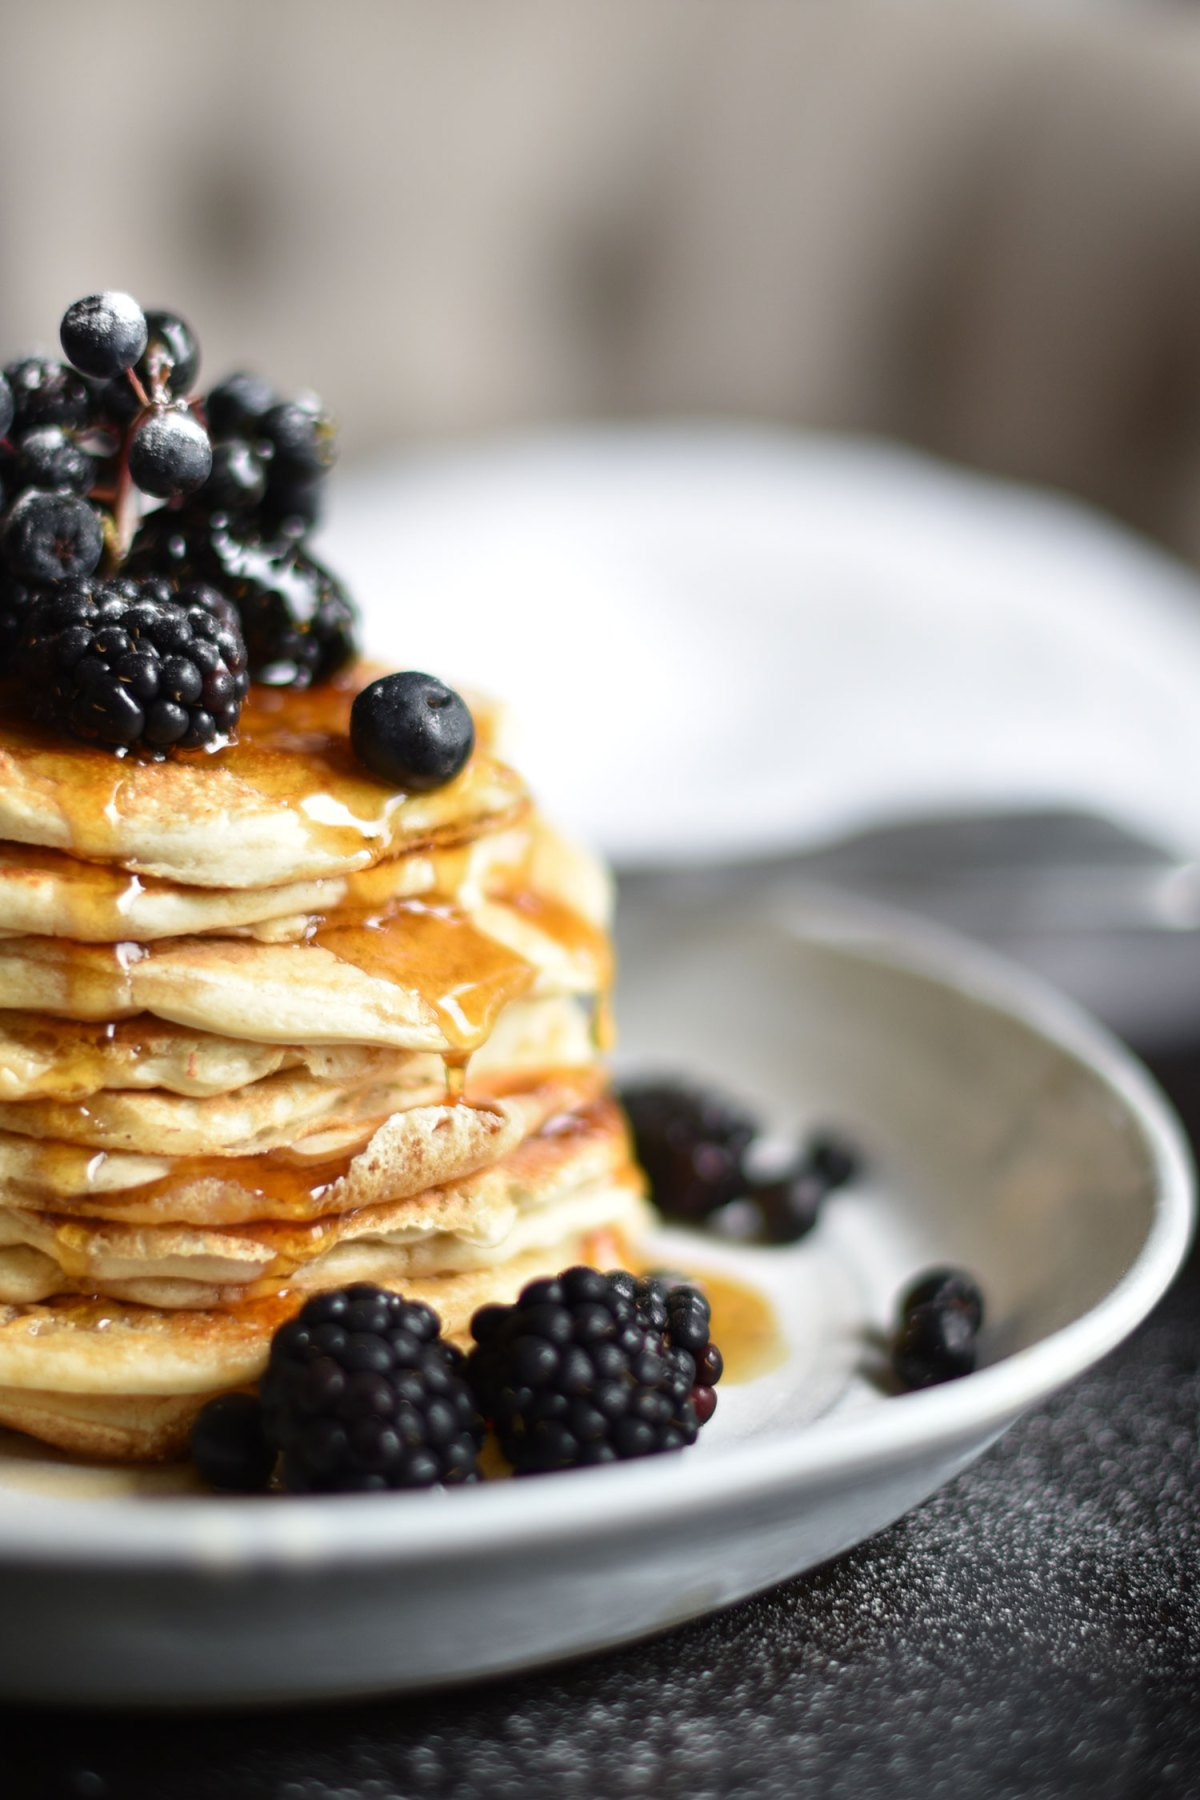 Pancakes with blackberries, blueberries and maple syrup for a nutritious breakfast